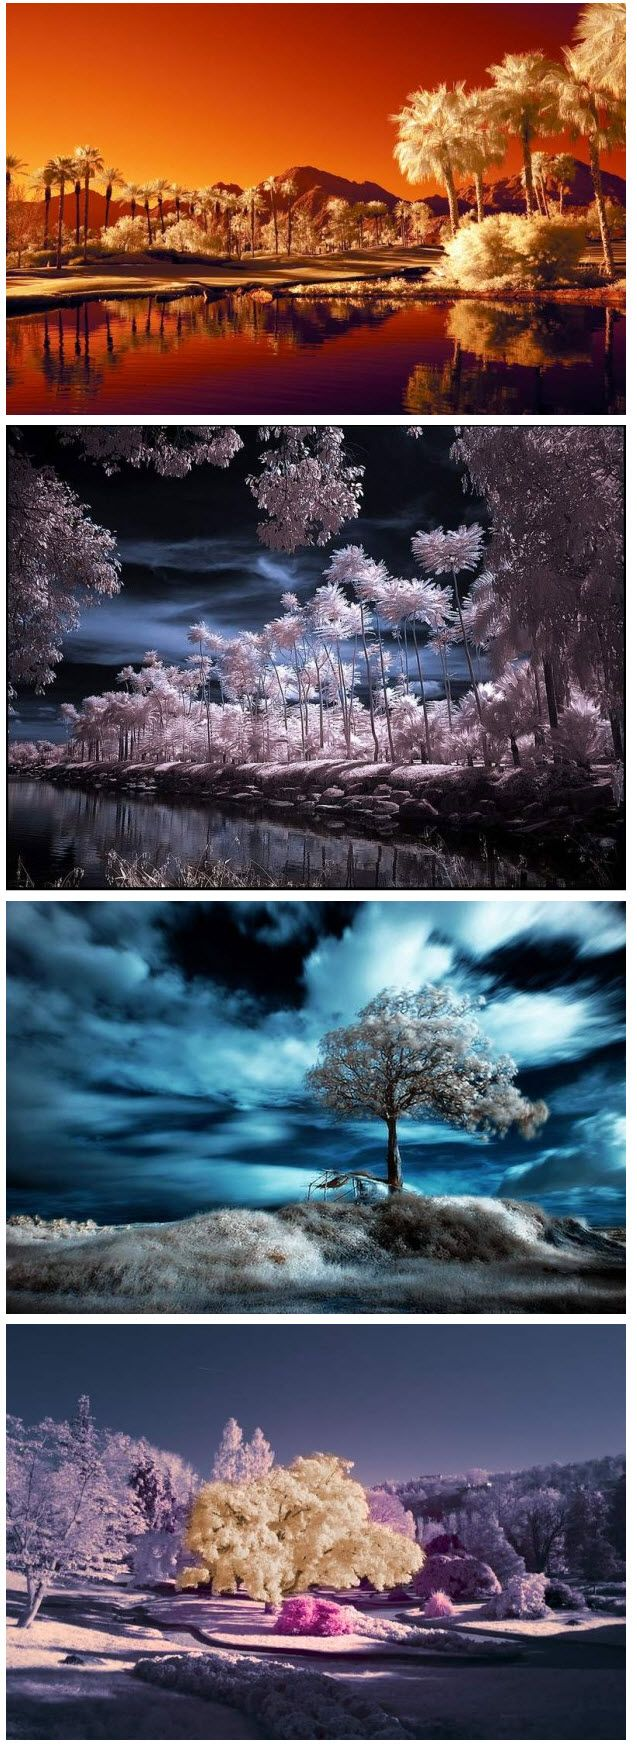 Impressive Infrared Photography. Wish I could modify my camera to take photos like these.